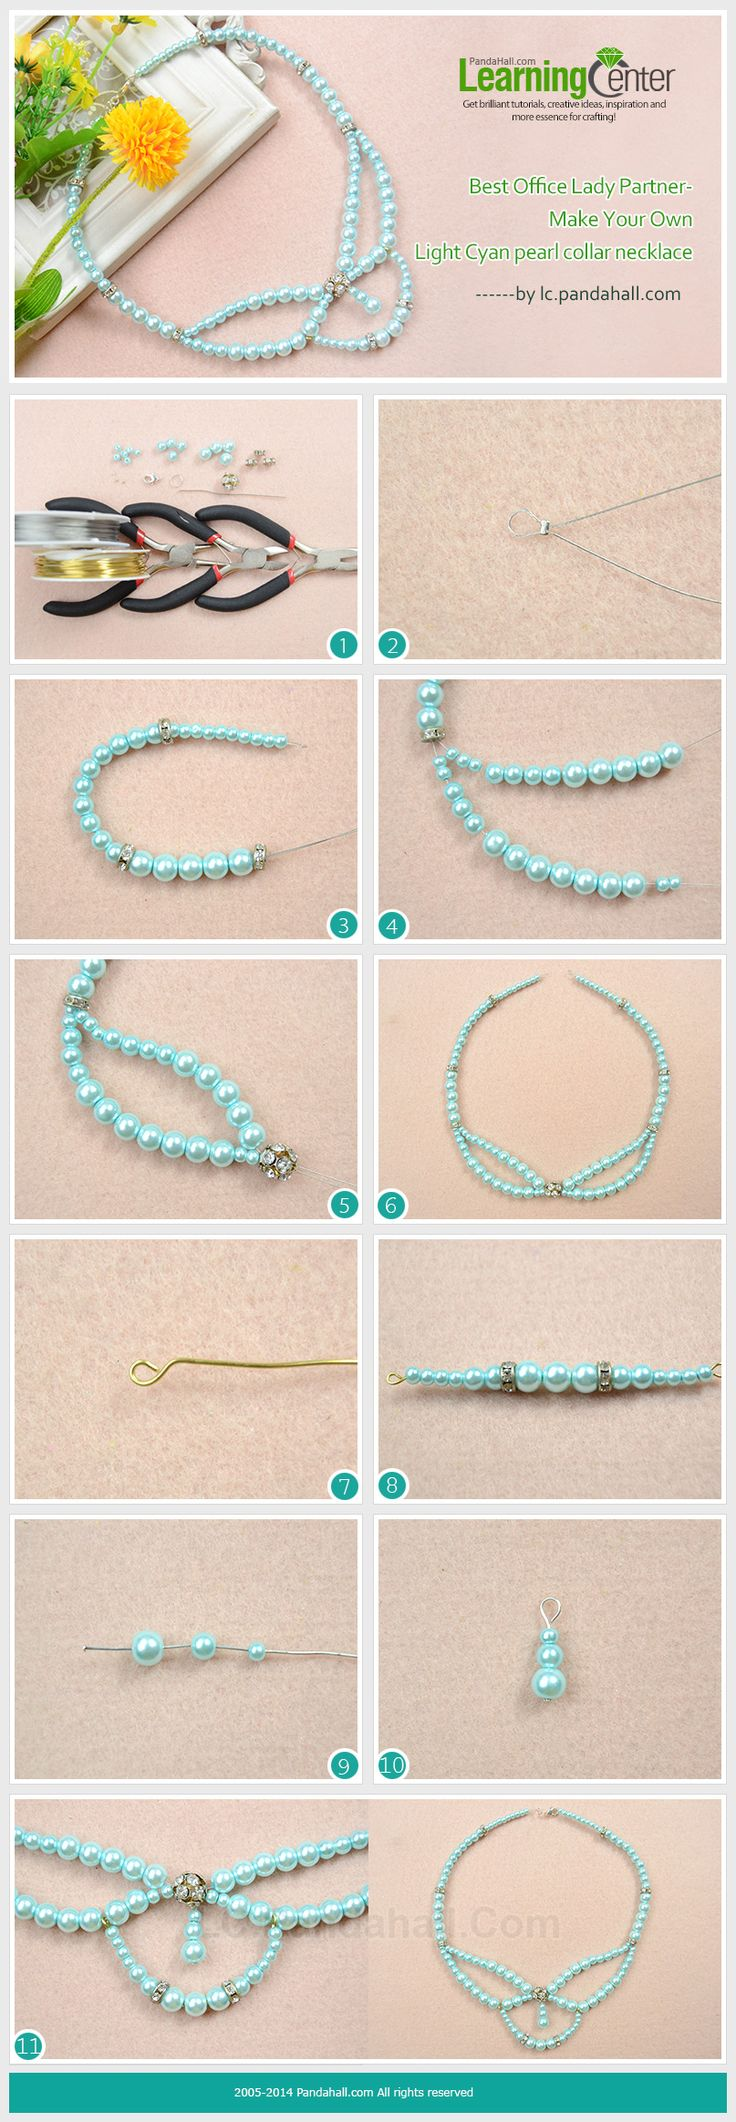 Best Office Lady Partner-Make Your Own Light Cyan Pearl Collar Necklace